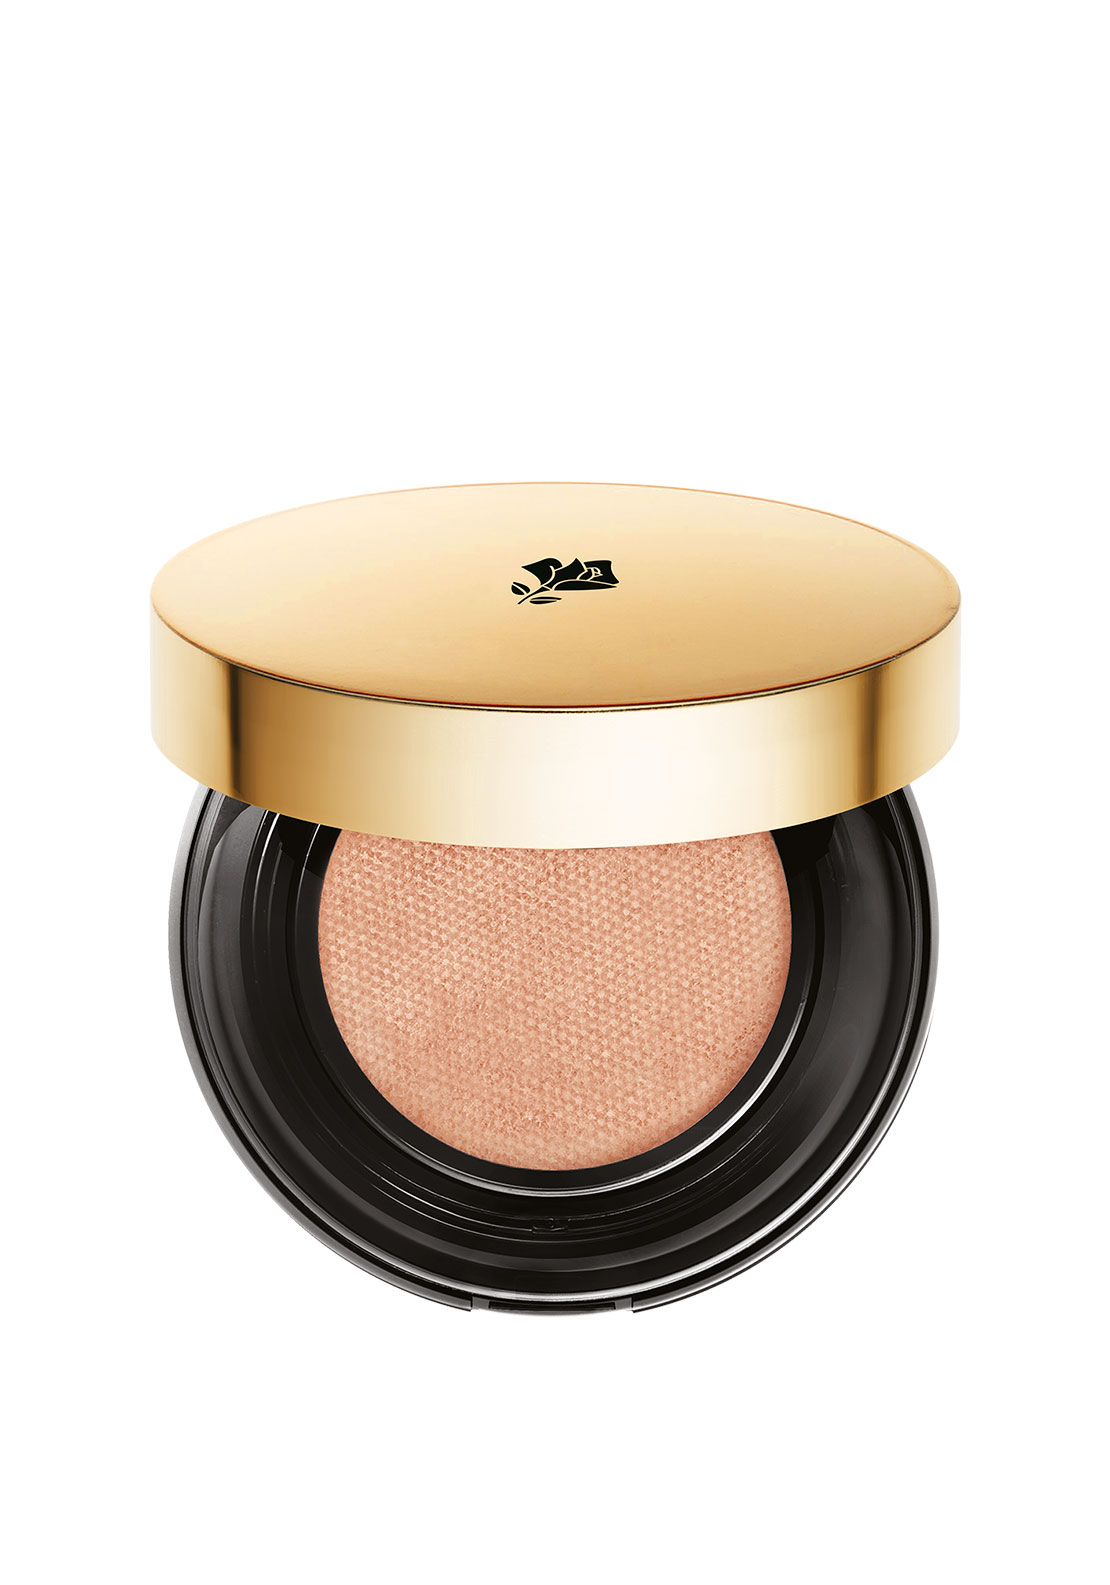 Lancome Teint Idole Ultra Cushion Compact Foundation, Beige Peche